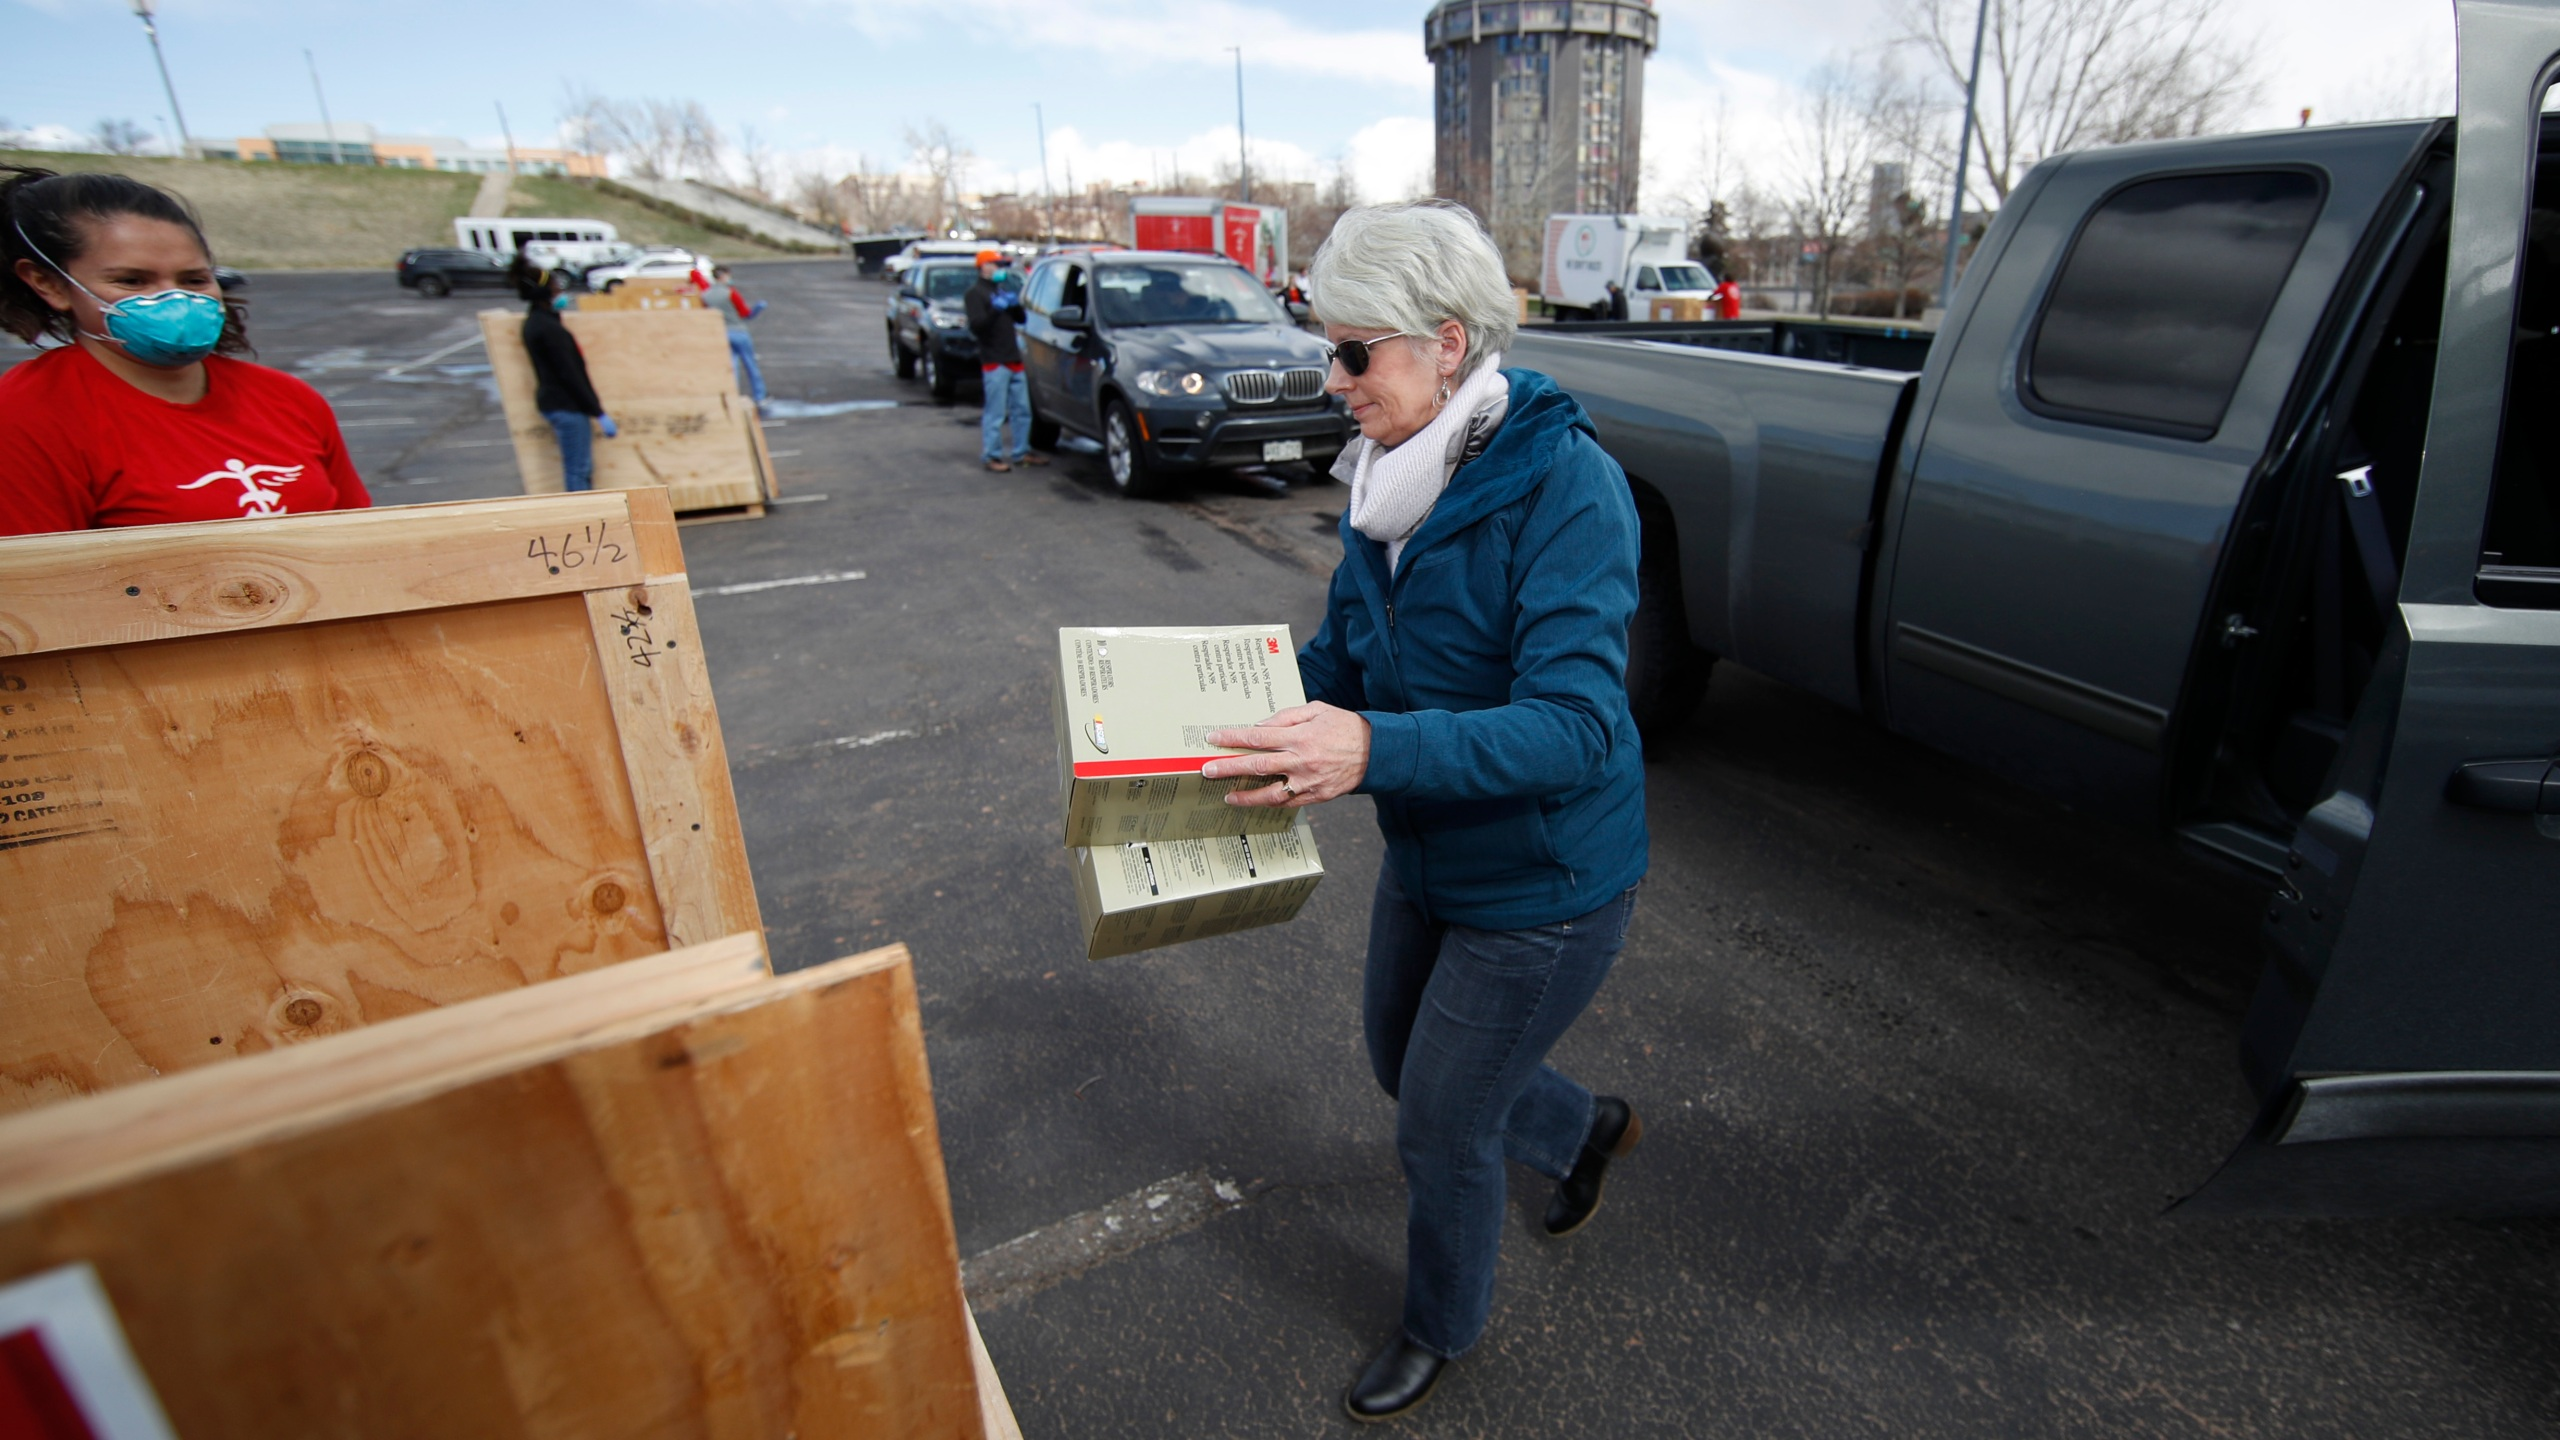 A woman carries protective masks to a bin as medical supplies are donated as part of an effort staged by two state lawmakers, Project C.U.R.E., Colorado Concern and the Denver Broncos to battle the spread of coronavirus Sunday, March 22, 2020, in Denver. (AP Photo/David Zalubowski)